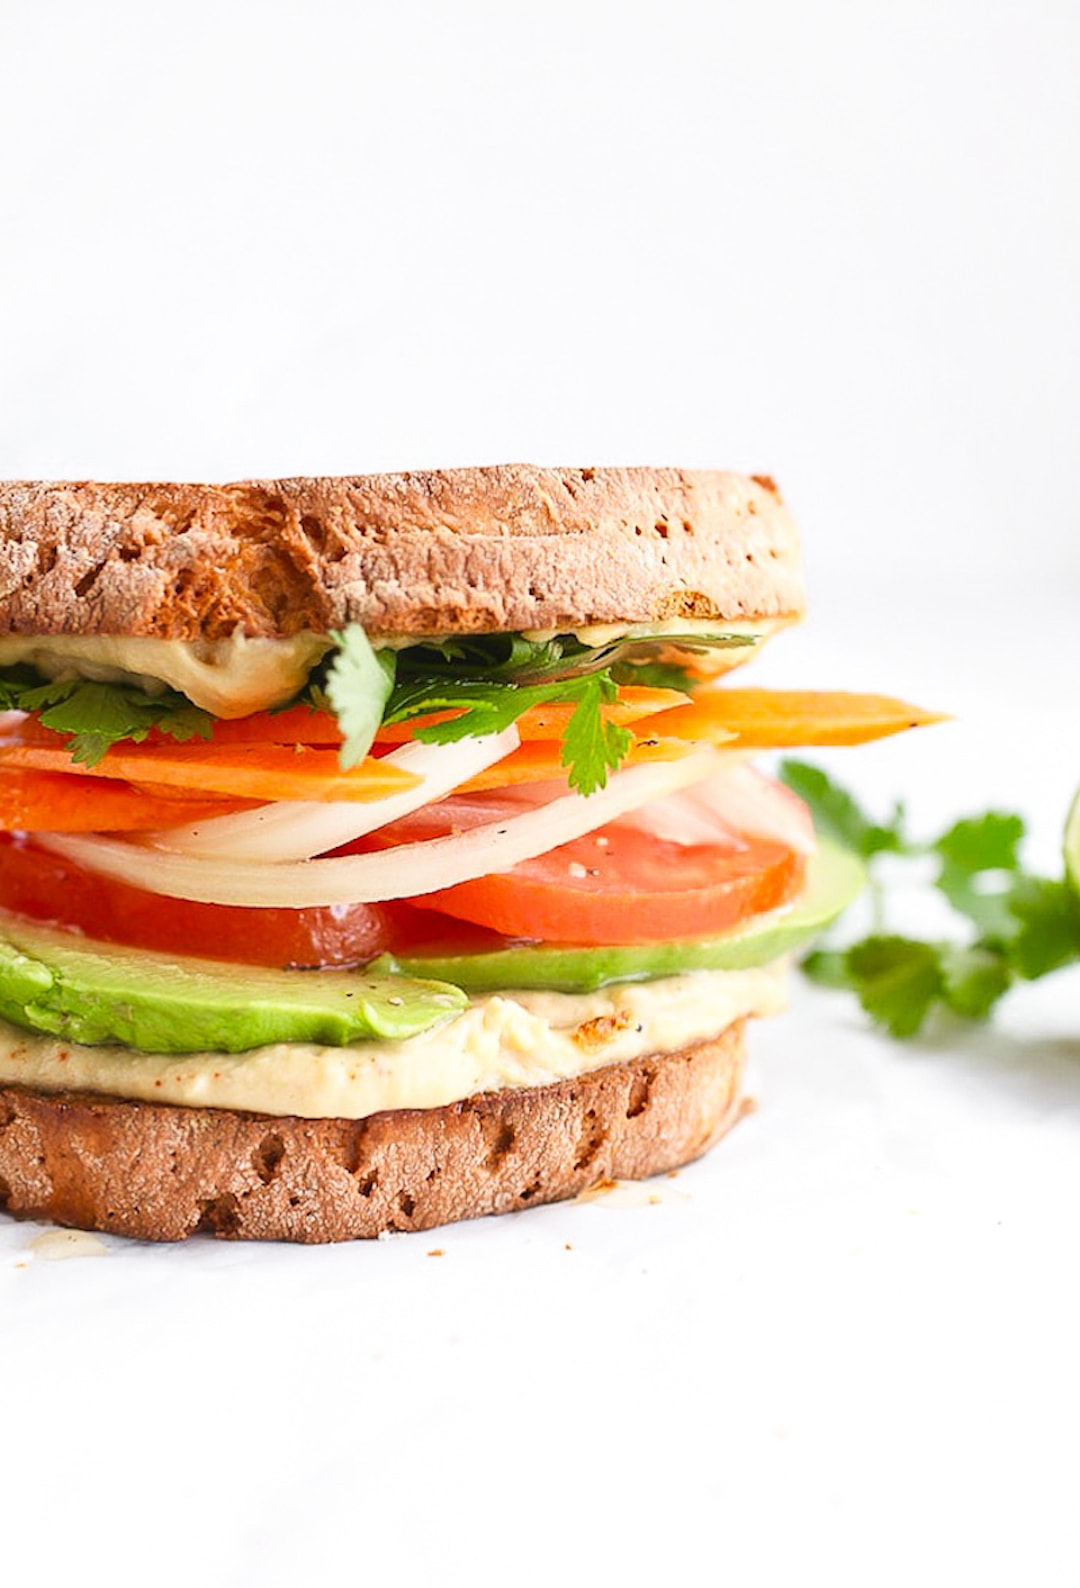 11 Yummy Plant Based Sandwiches - Avocado & Spiced Hummus Sandwich by Nutrition in the Kitch